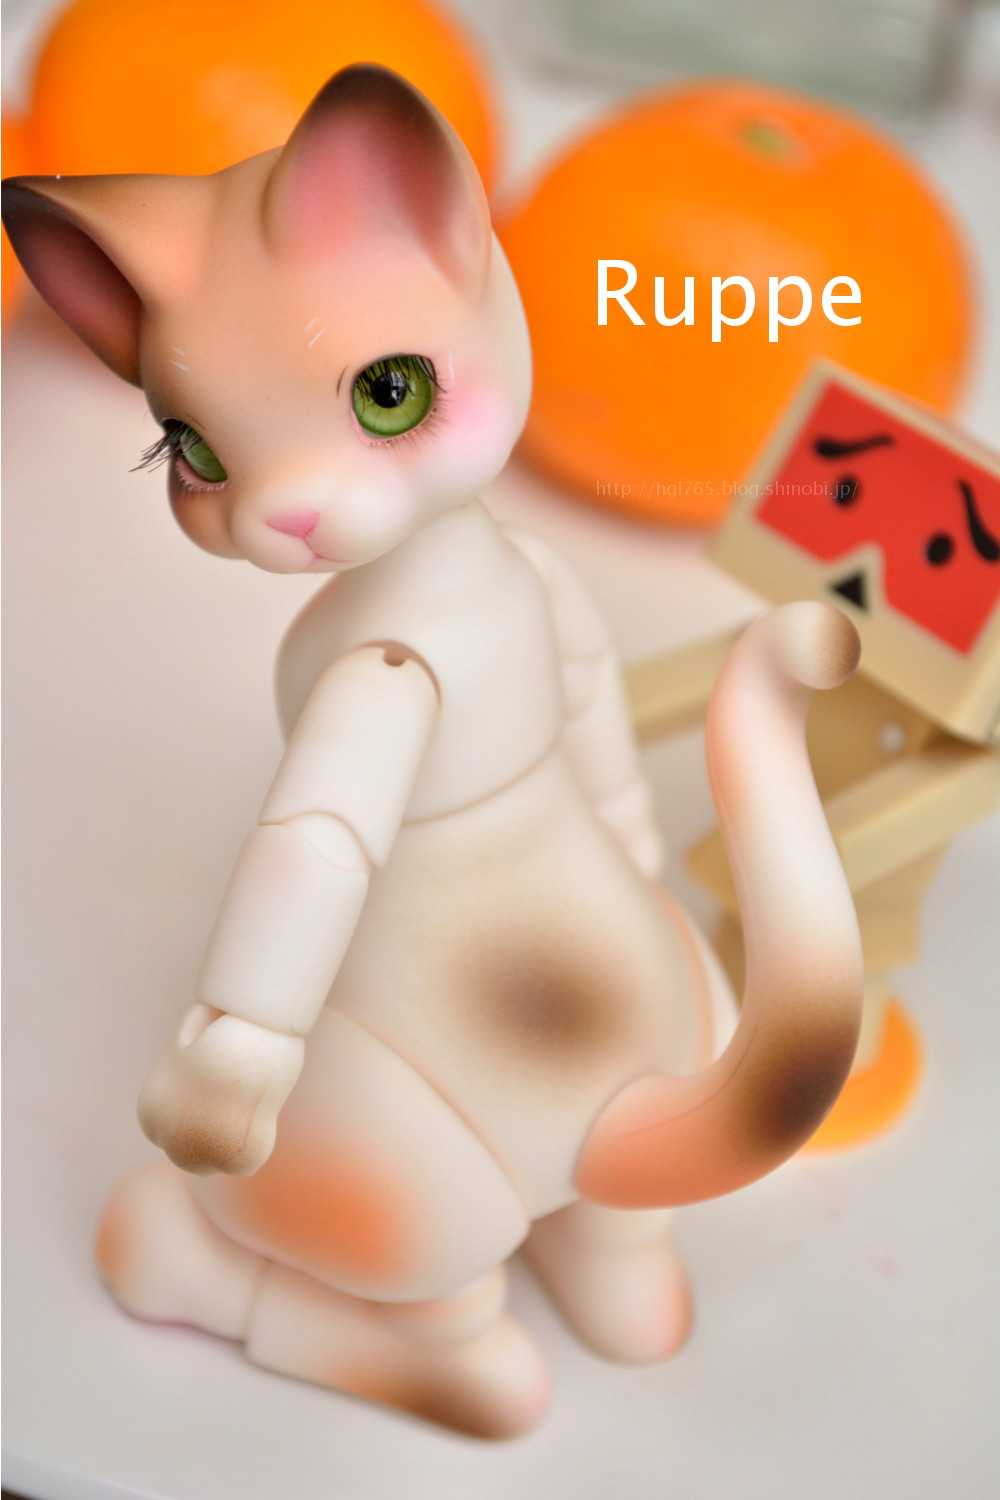 Ruppe